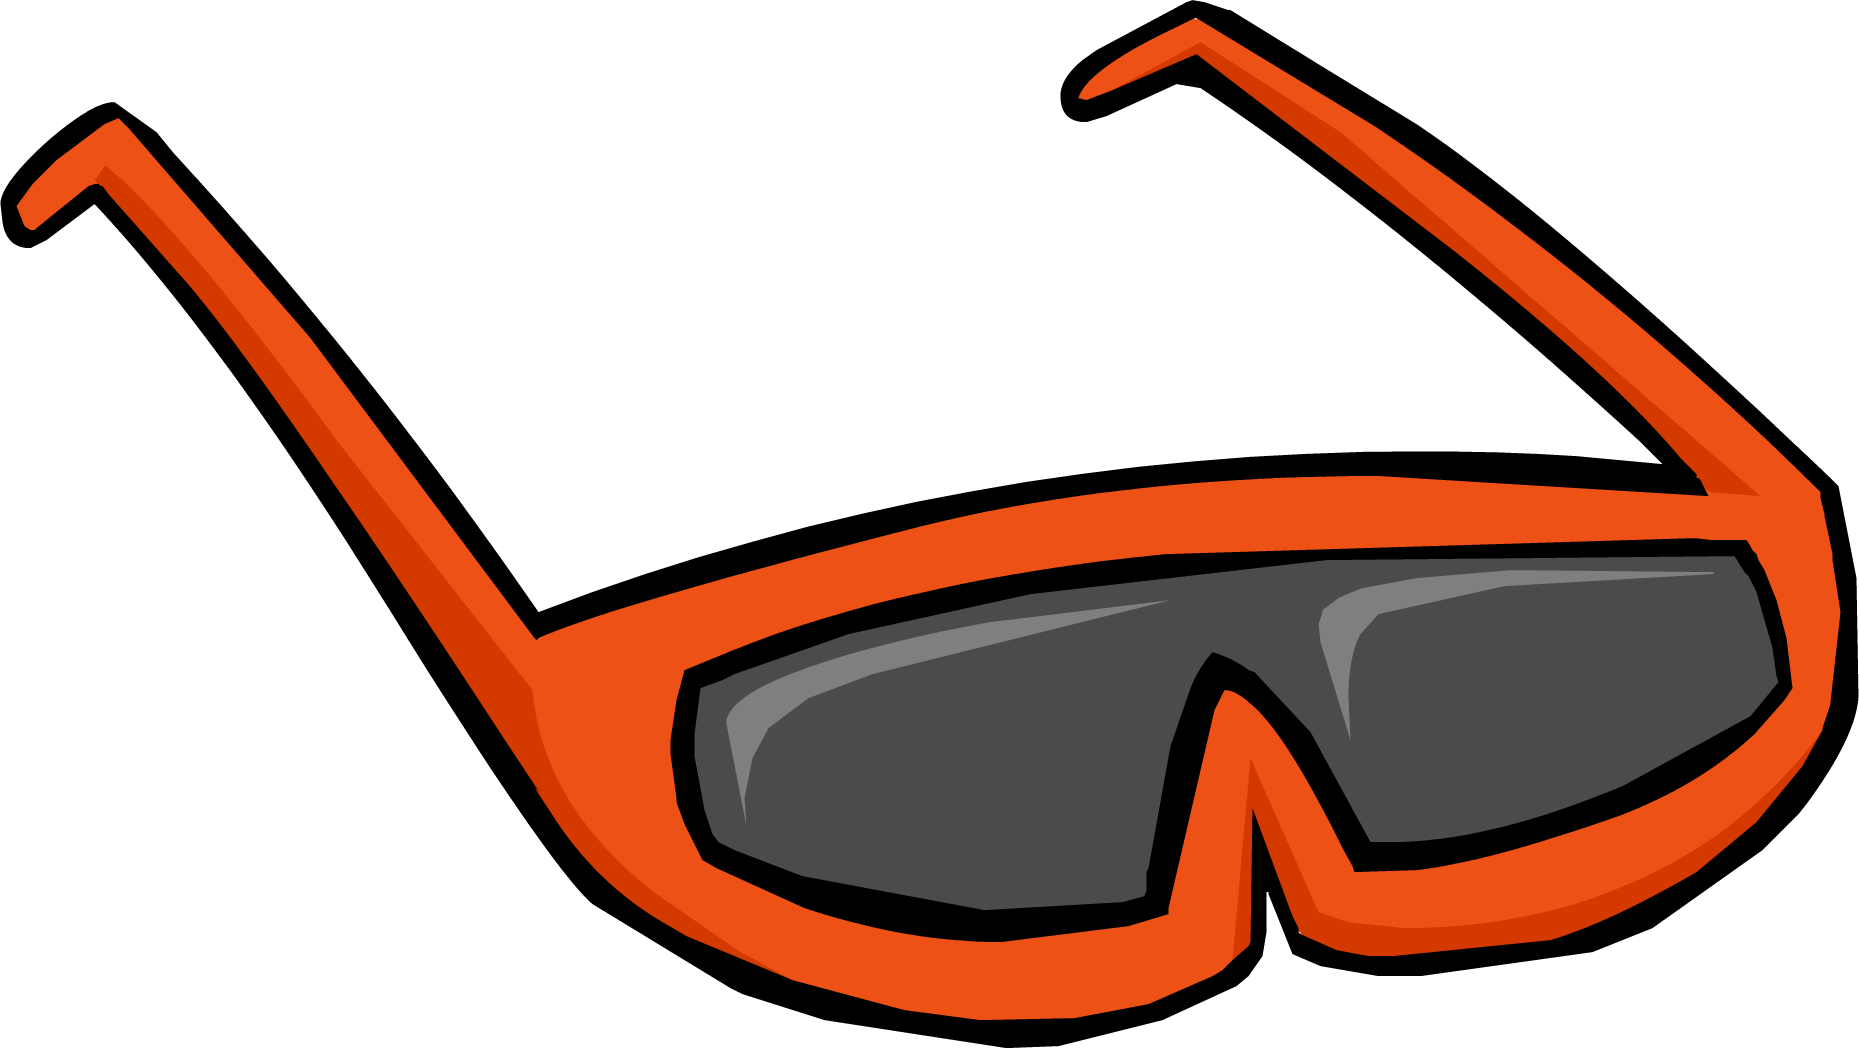 Orange Sunglasses | Club Penguin Rewritten Wiki | Fandom